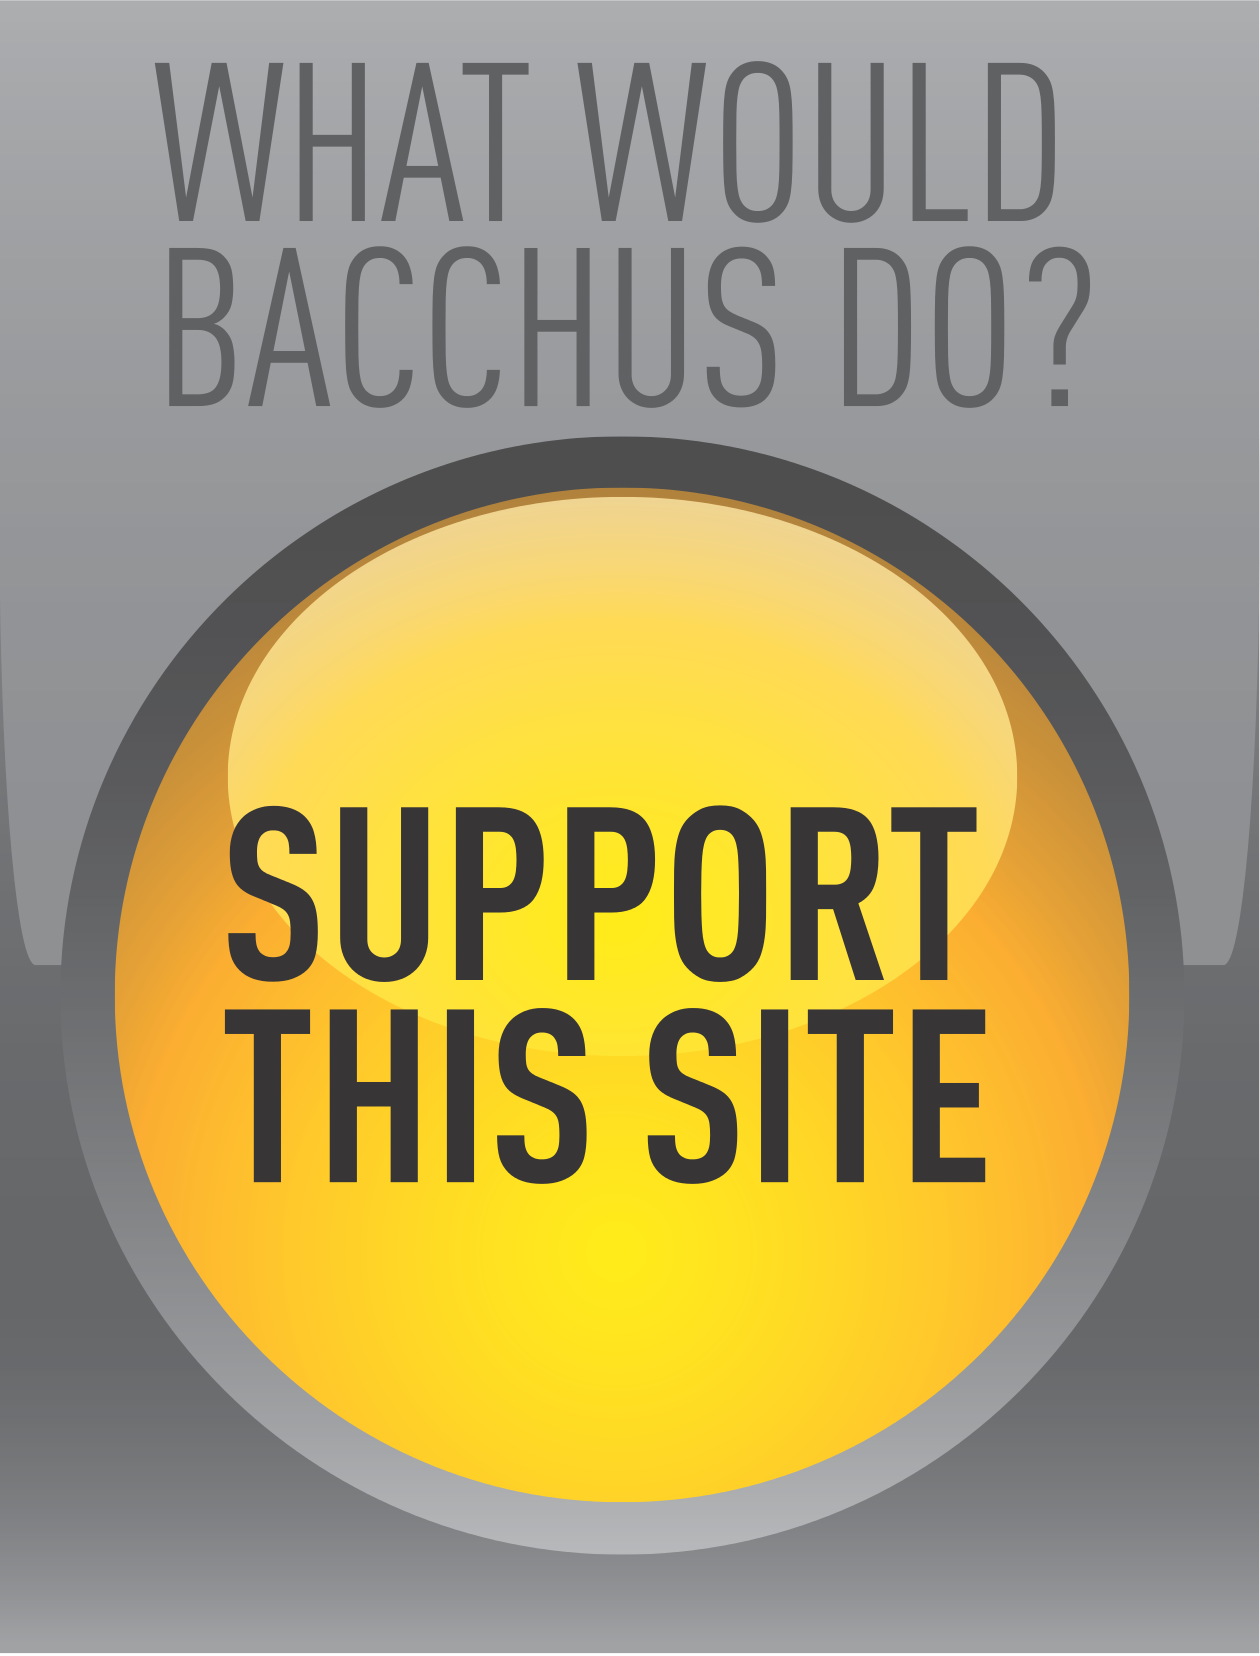 What Would Bacchus Do?